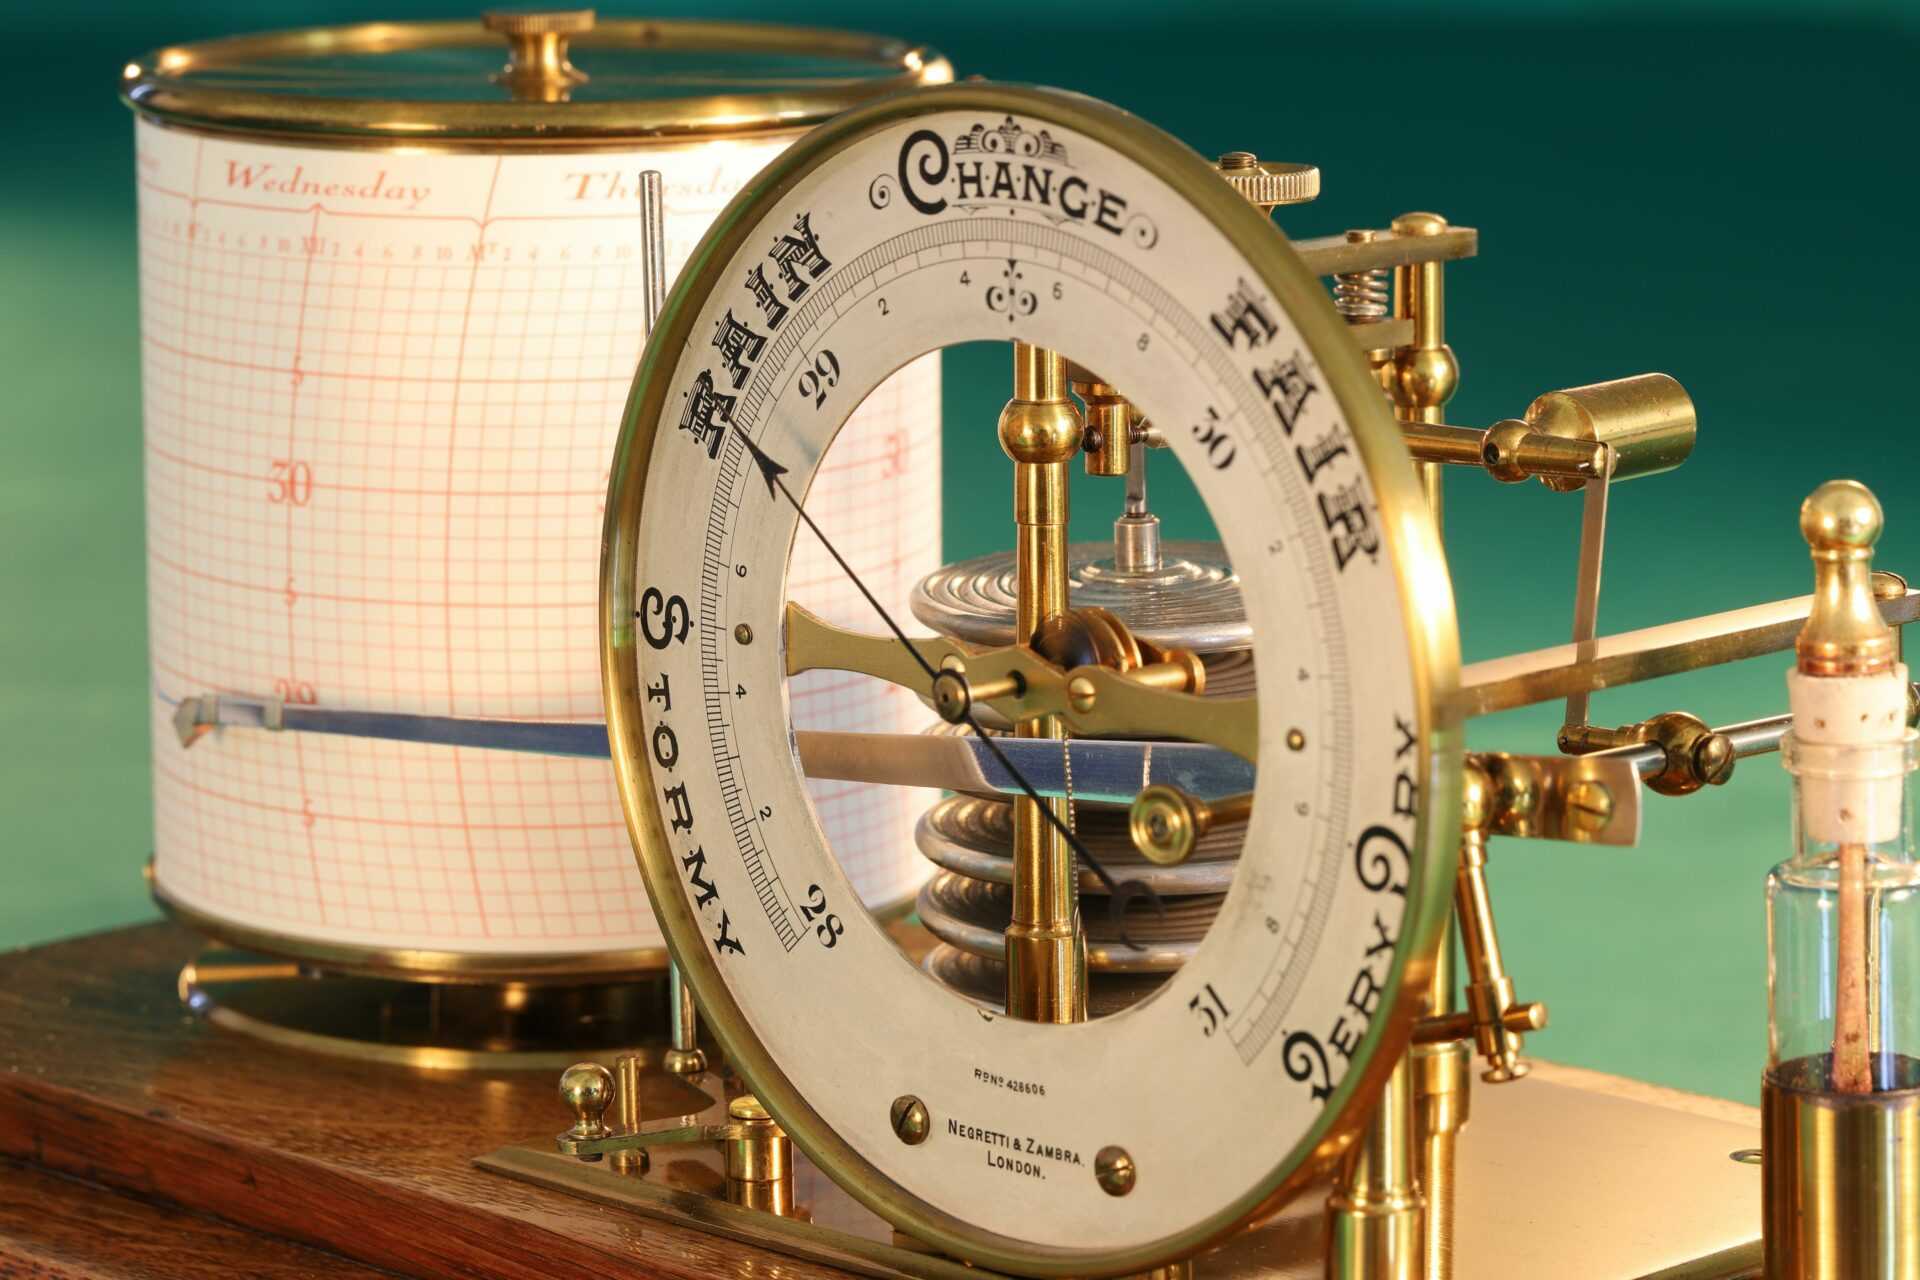 Image of Negretti & Zambra Barograph with Dial No 455 c1918 with case lid removed taken from righthand side